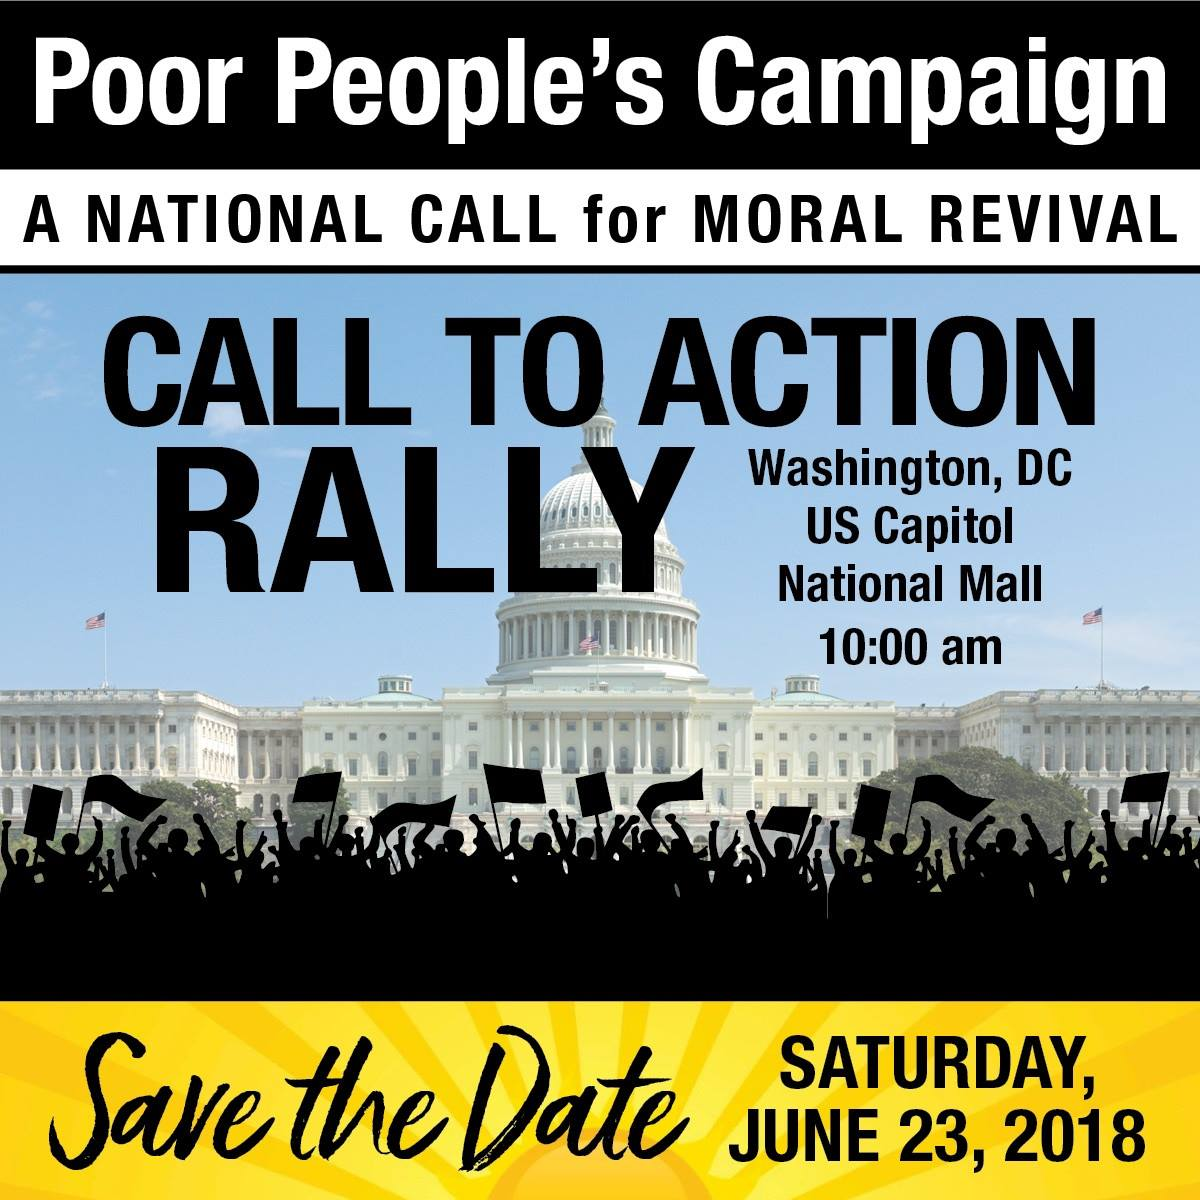 Poor People's Campaign Rally Info